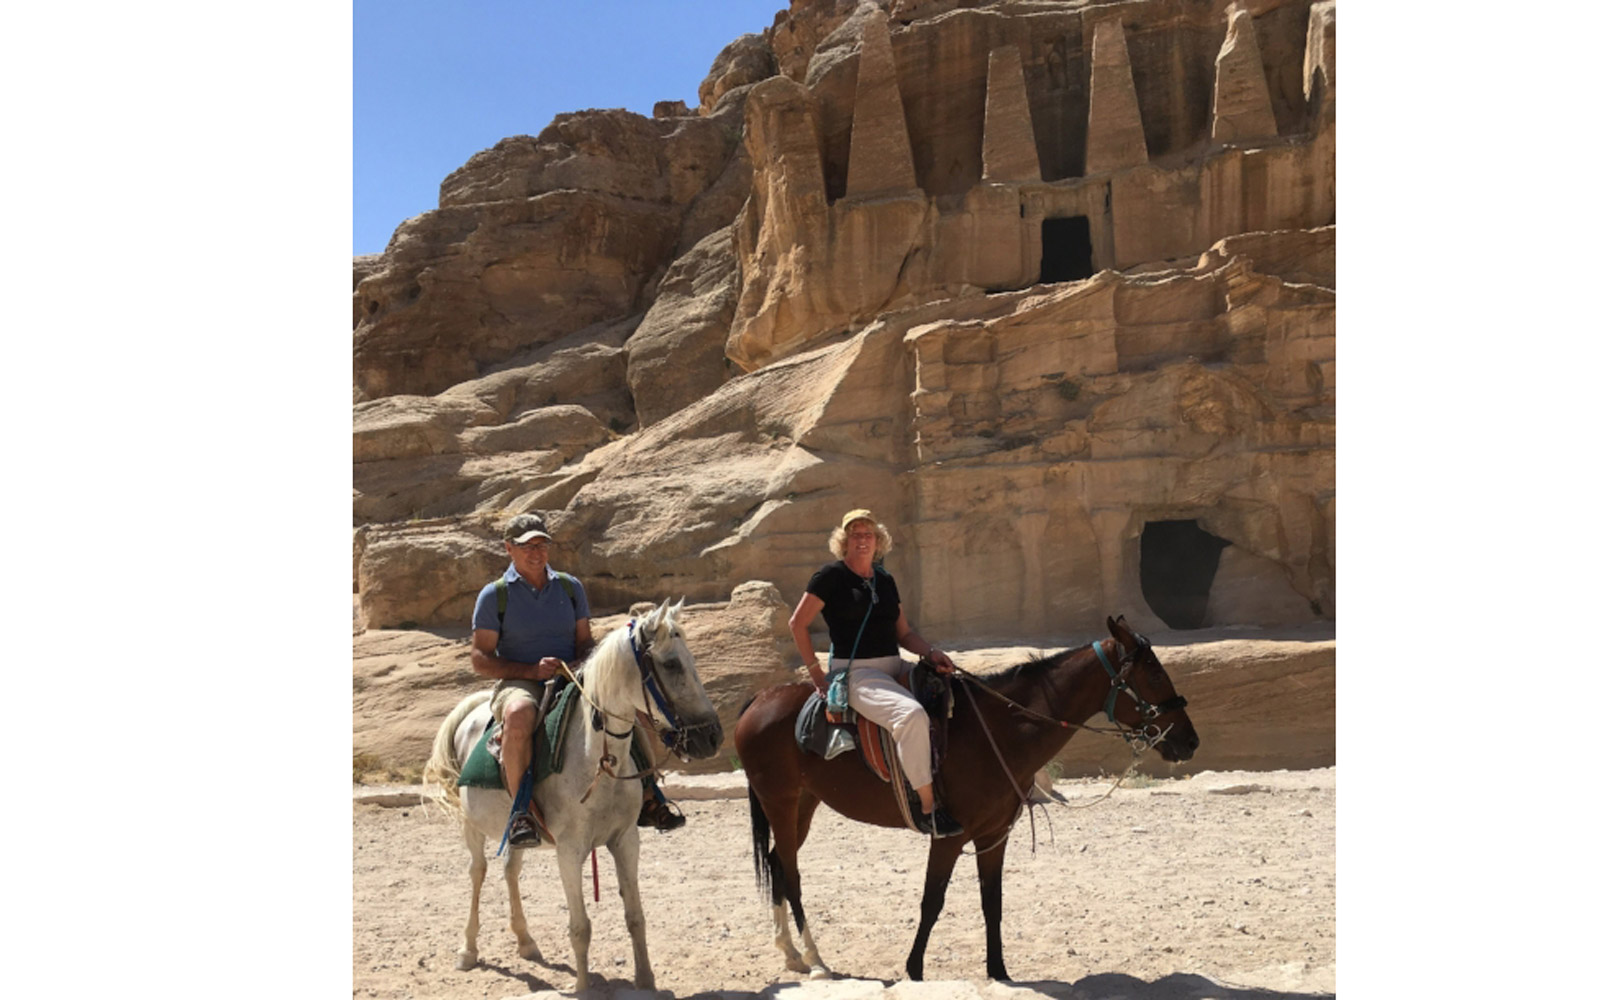 Michael and Debbie Campbell traveling by camel